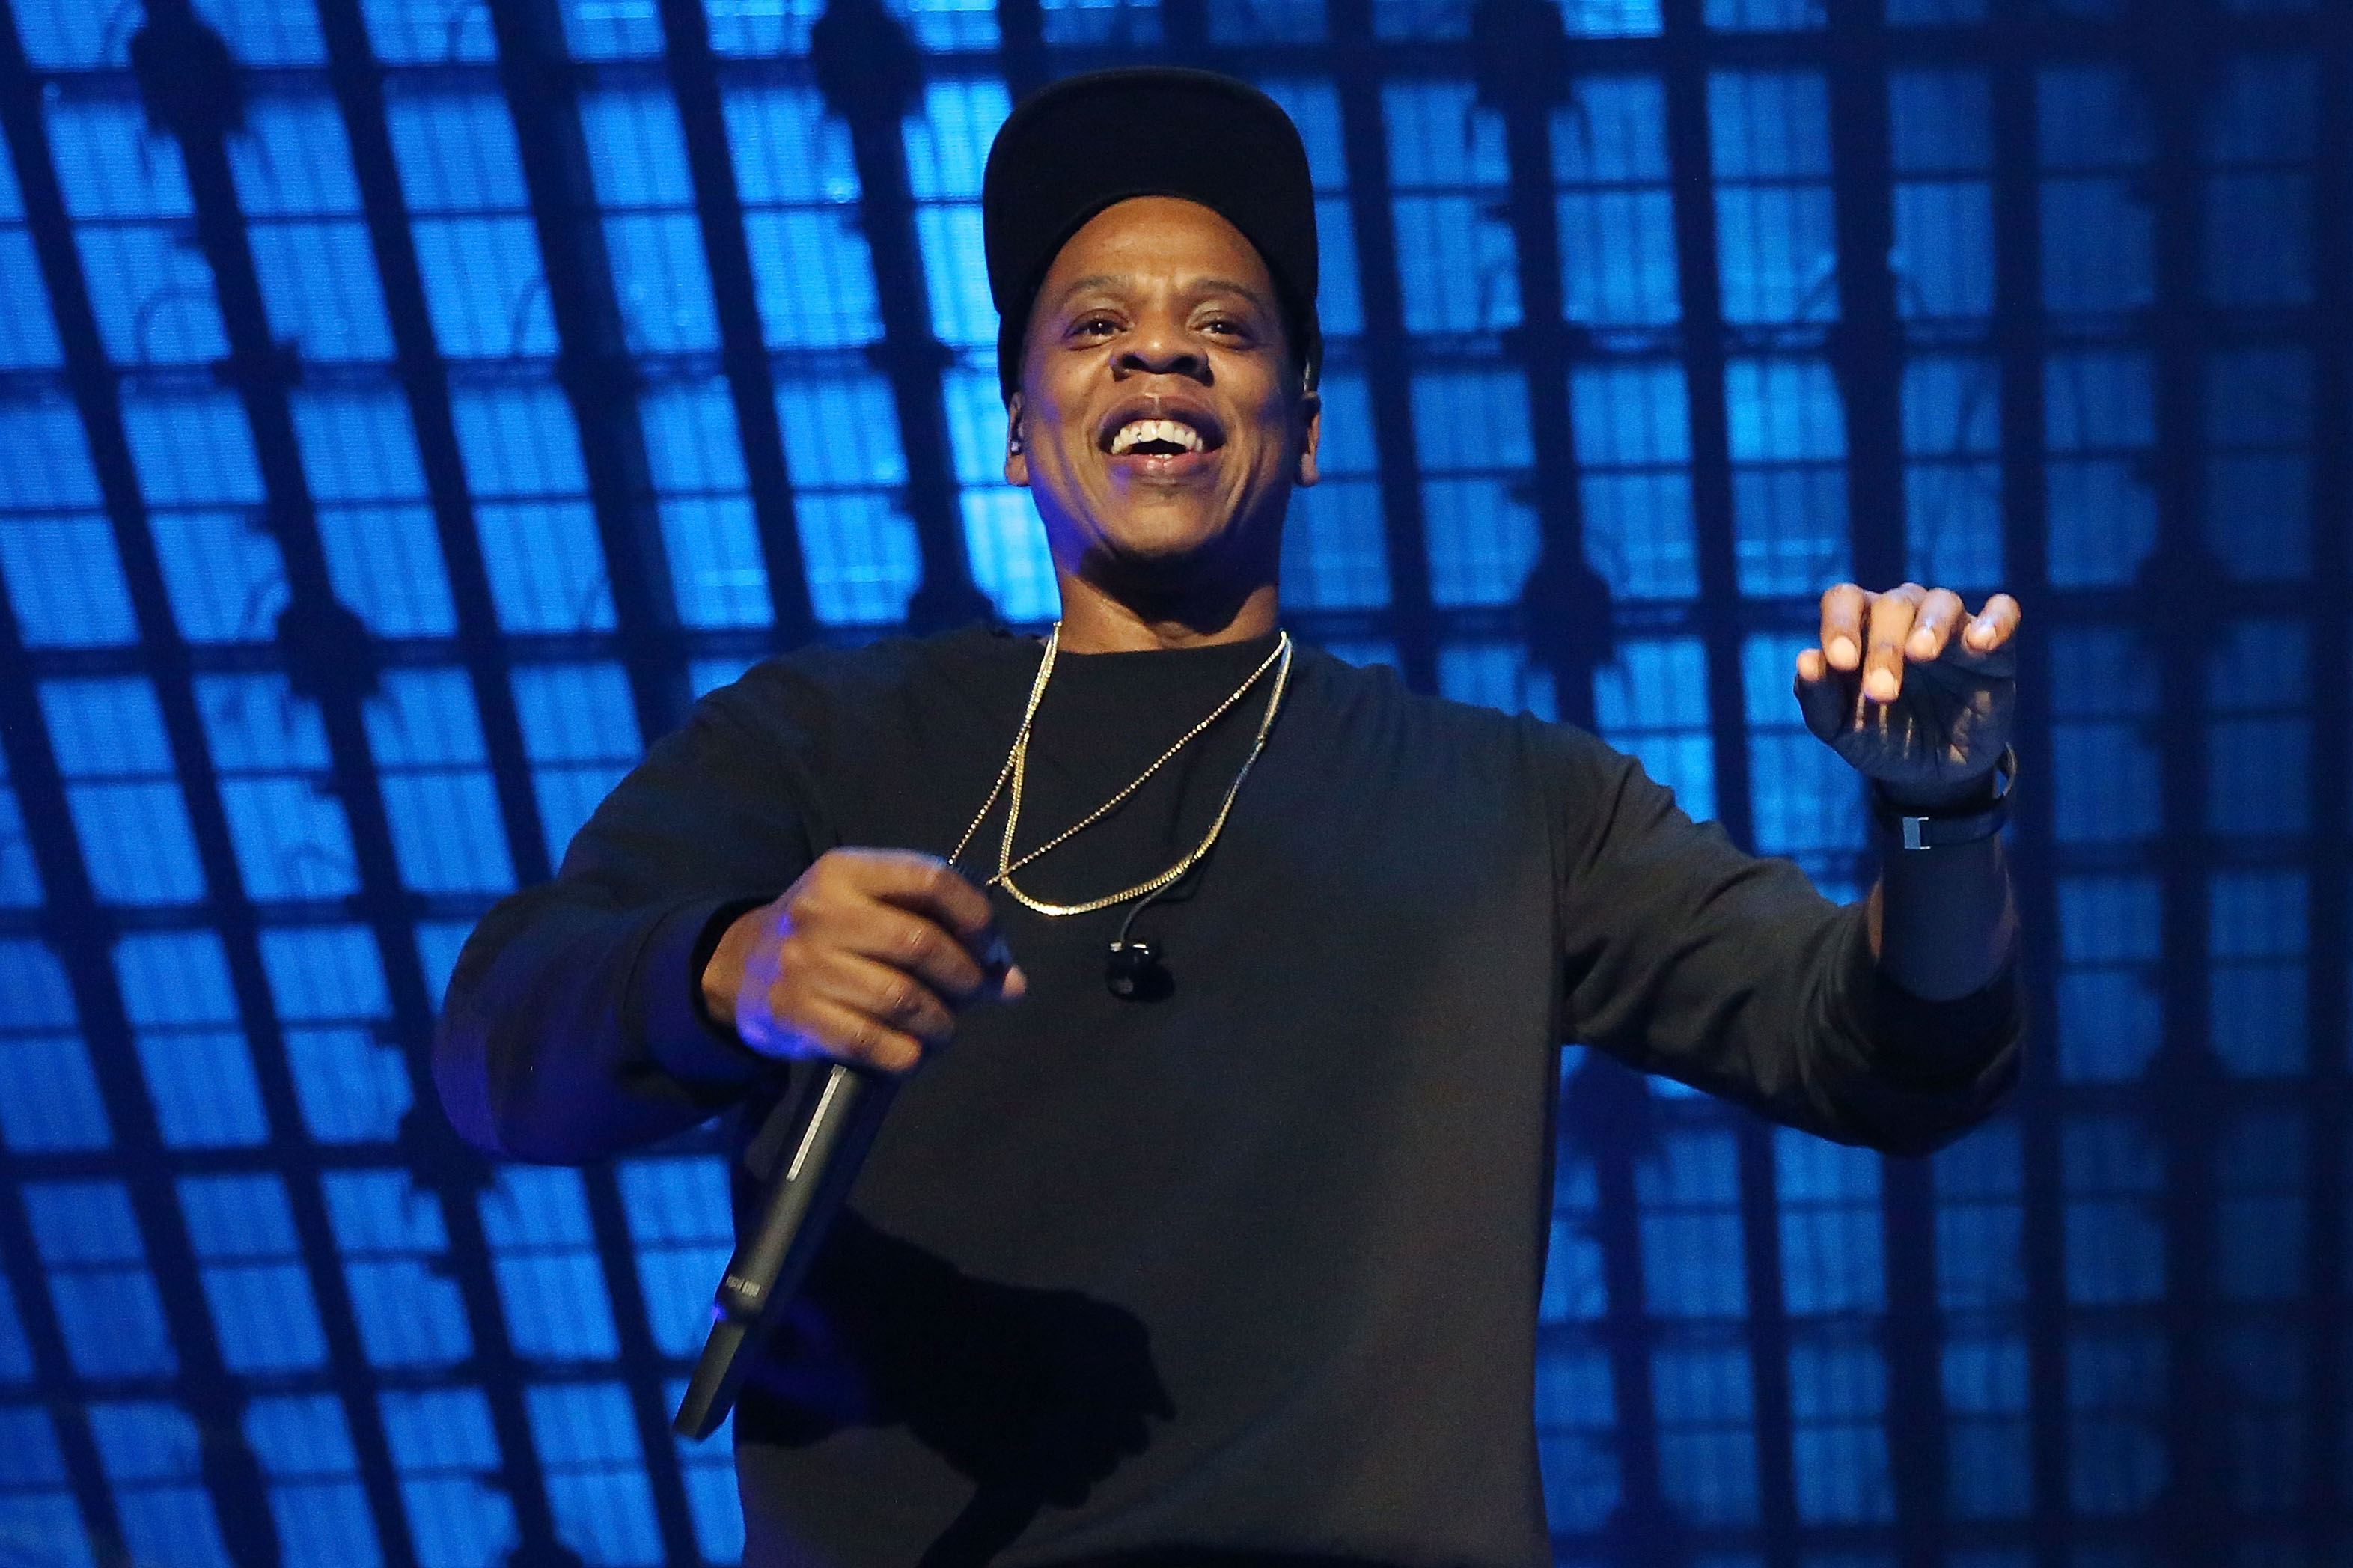 Jay Z performs during Tidal X: 1020 at Barclays Center on October 20, 2015 in the Brooklyn borough of New York City.